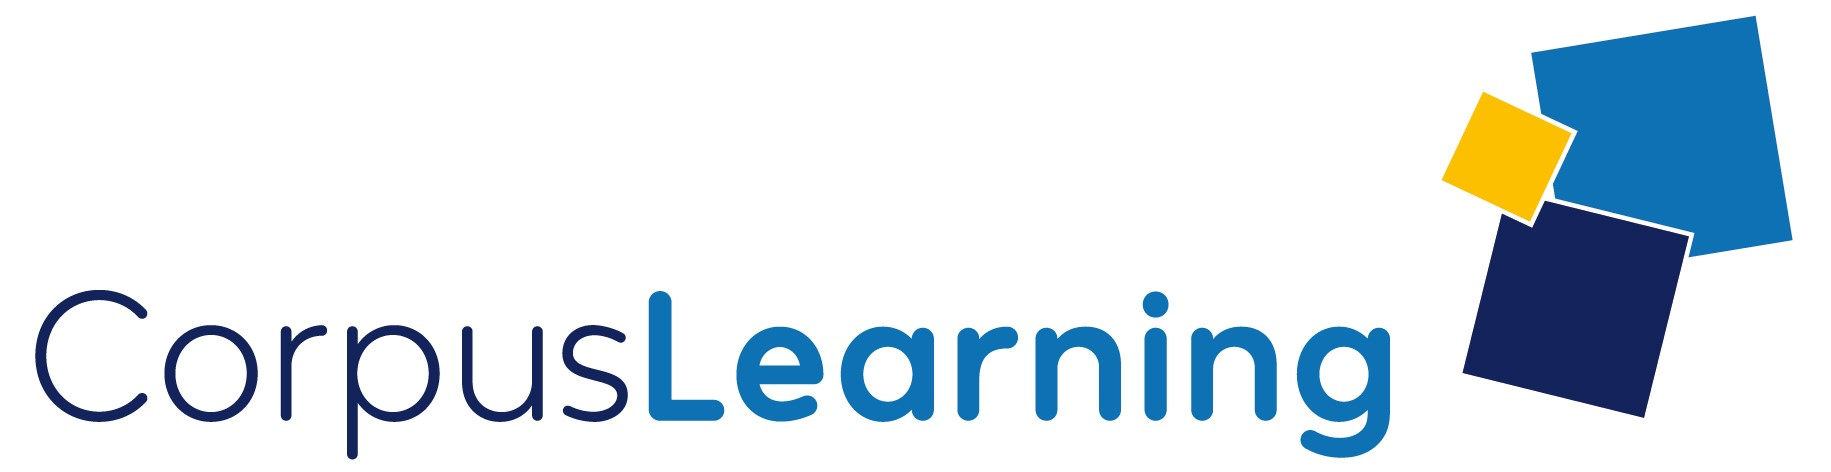 Campus Learning Logo